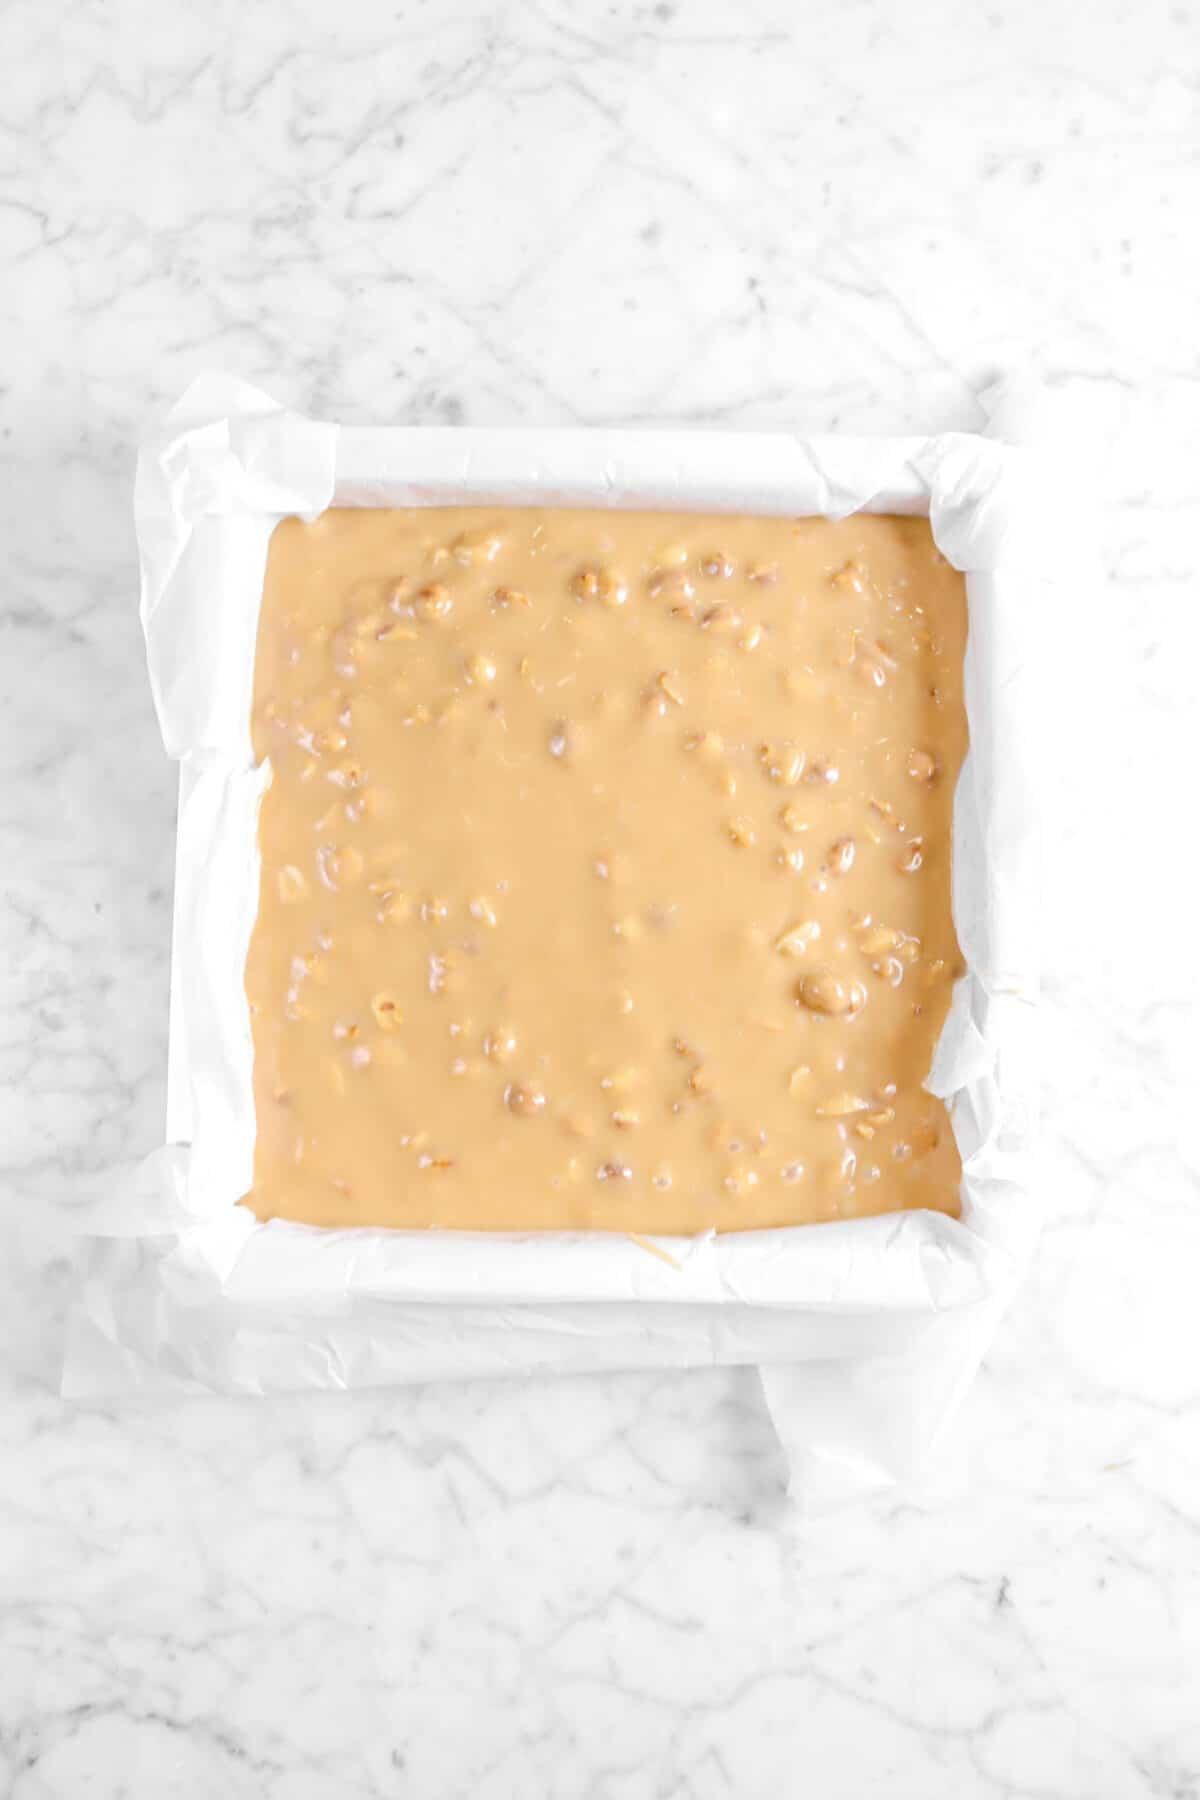 peanut caramel in square lined cake pan